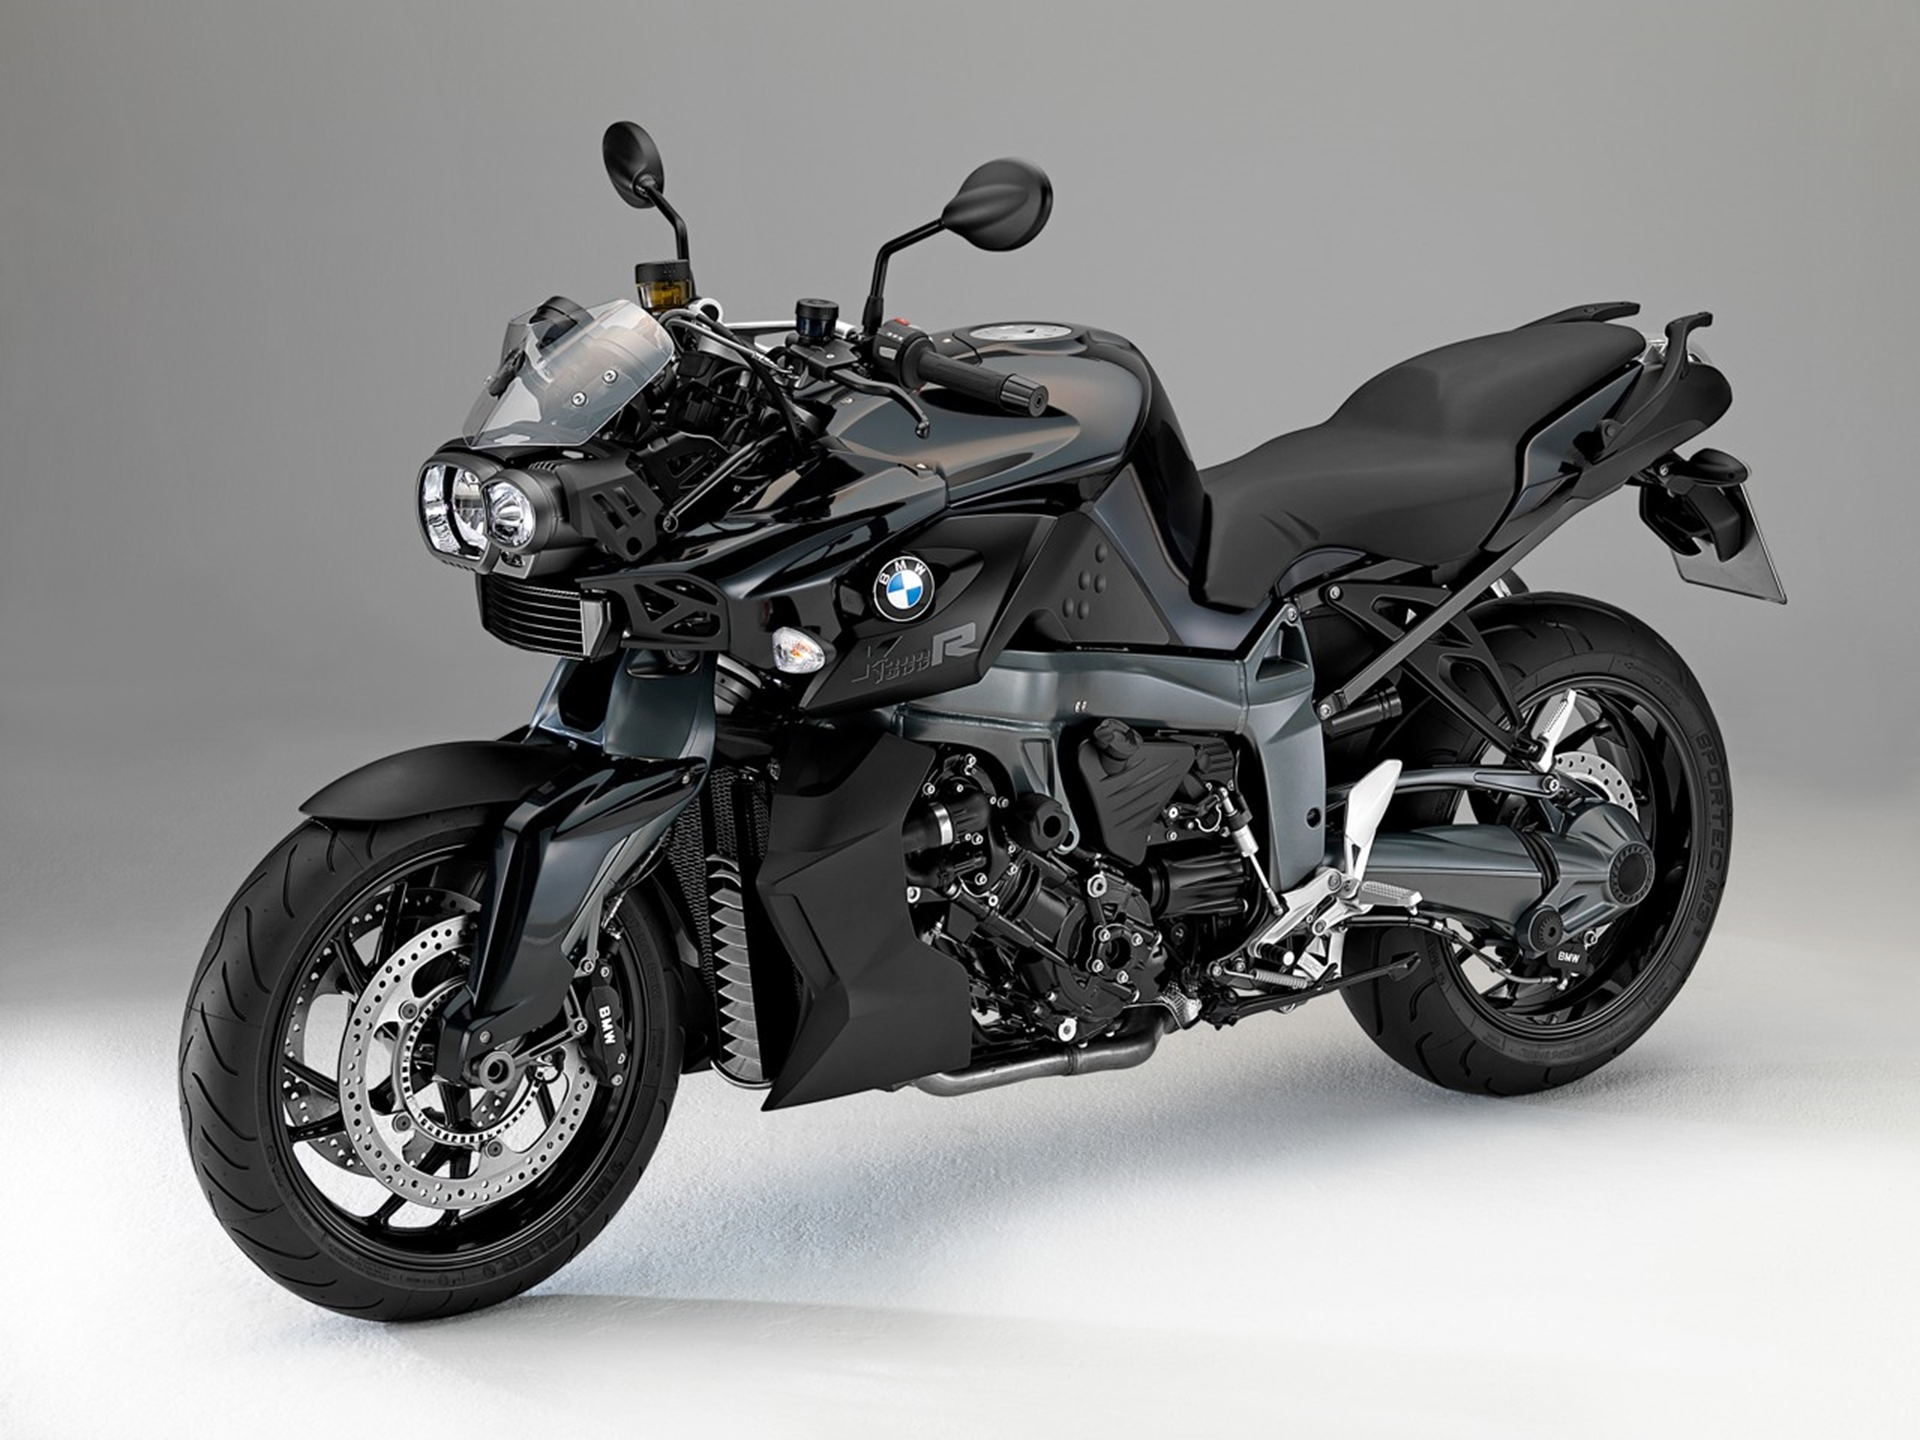 BMW Motorcycle K1300R